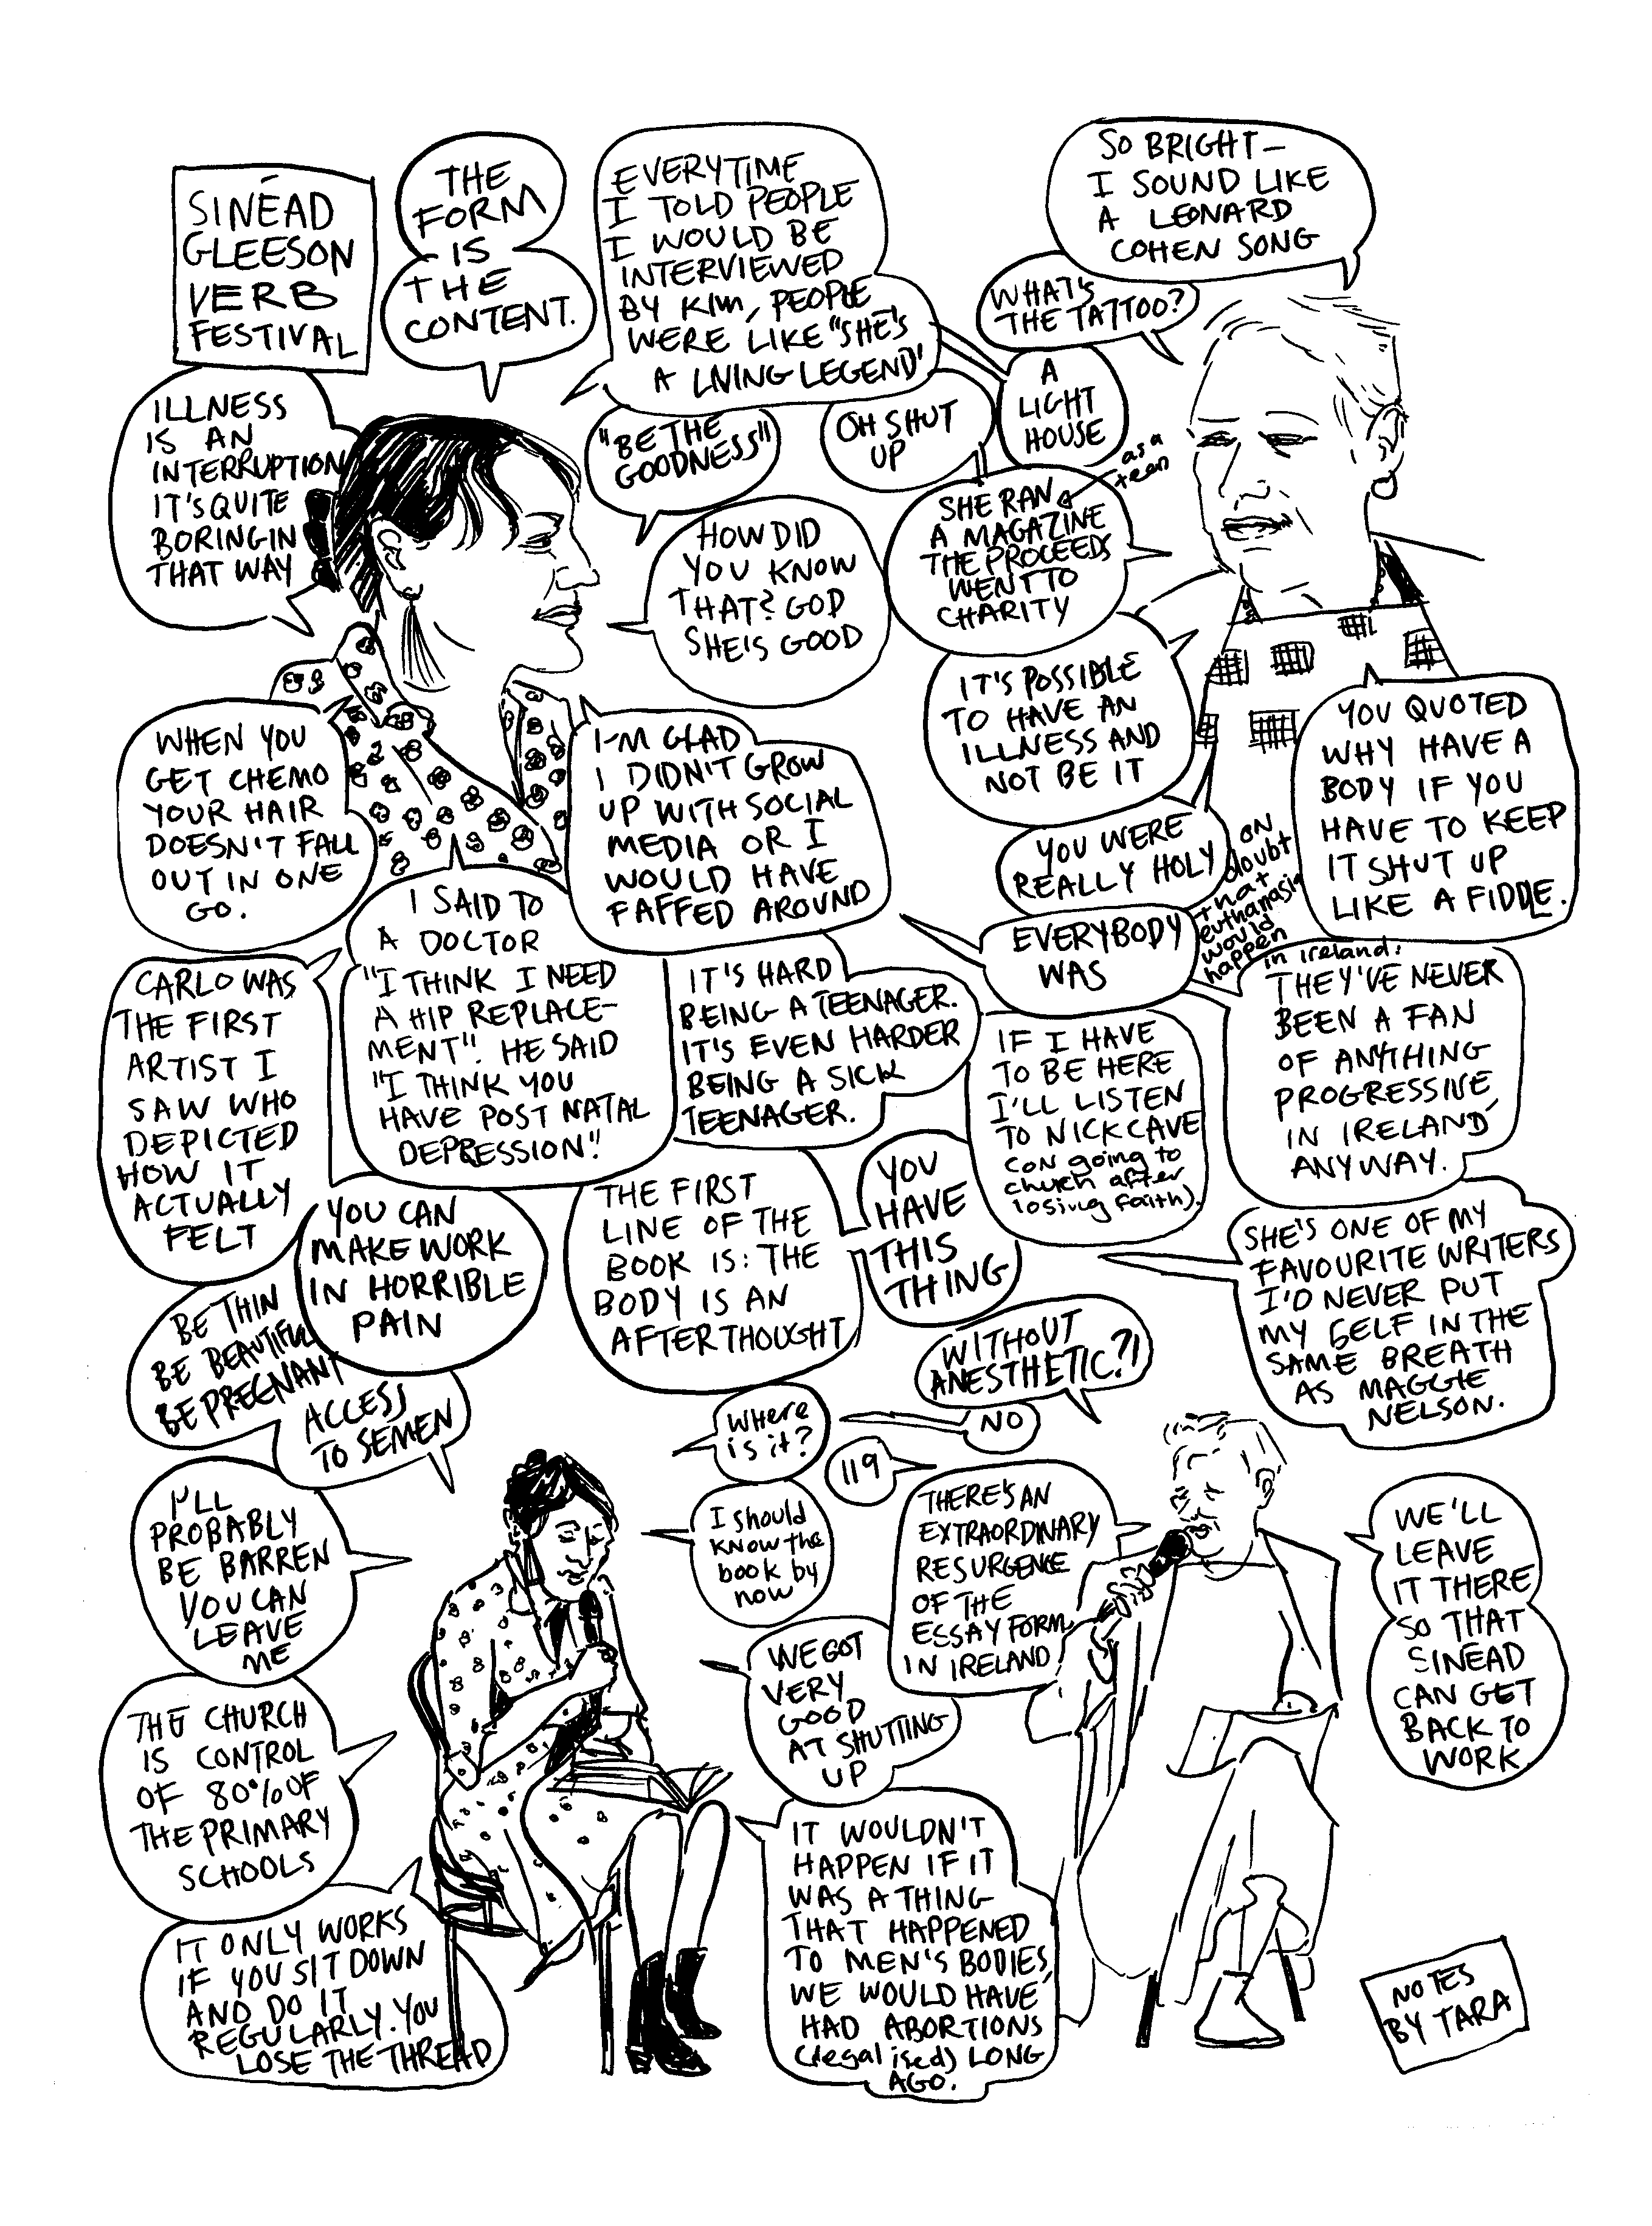 Drawing/comic of Sinéad Gleeson in conversation with Kim Hill about her book Constellations at Verb 2019